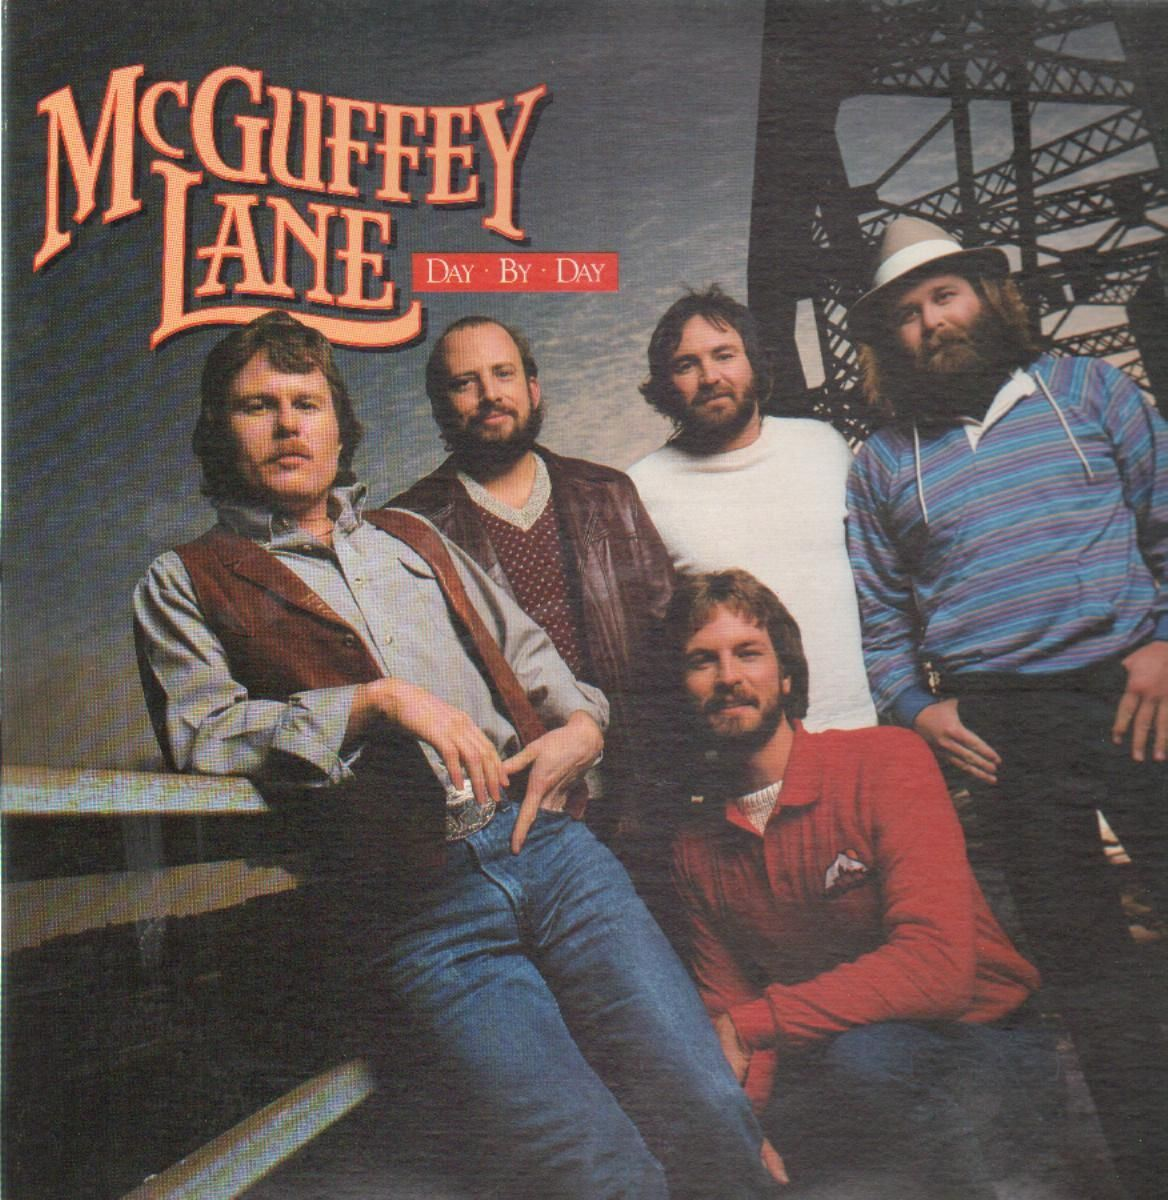 mcguffey_lane-day_by_day